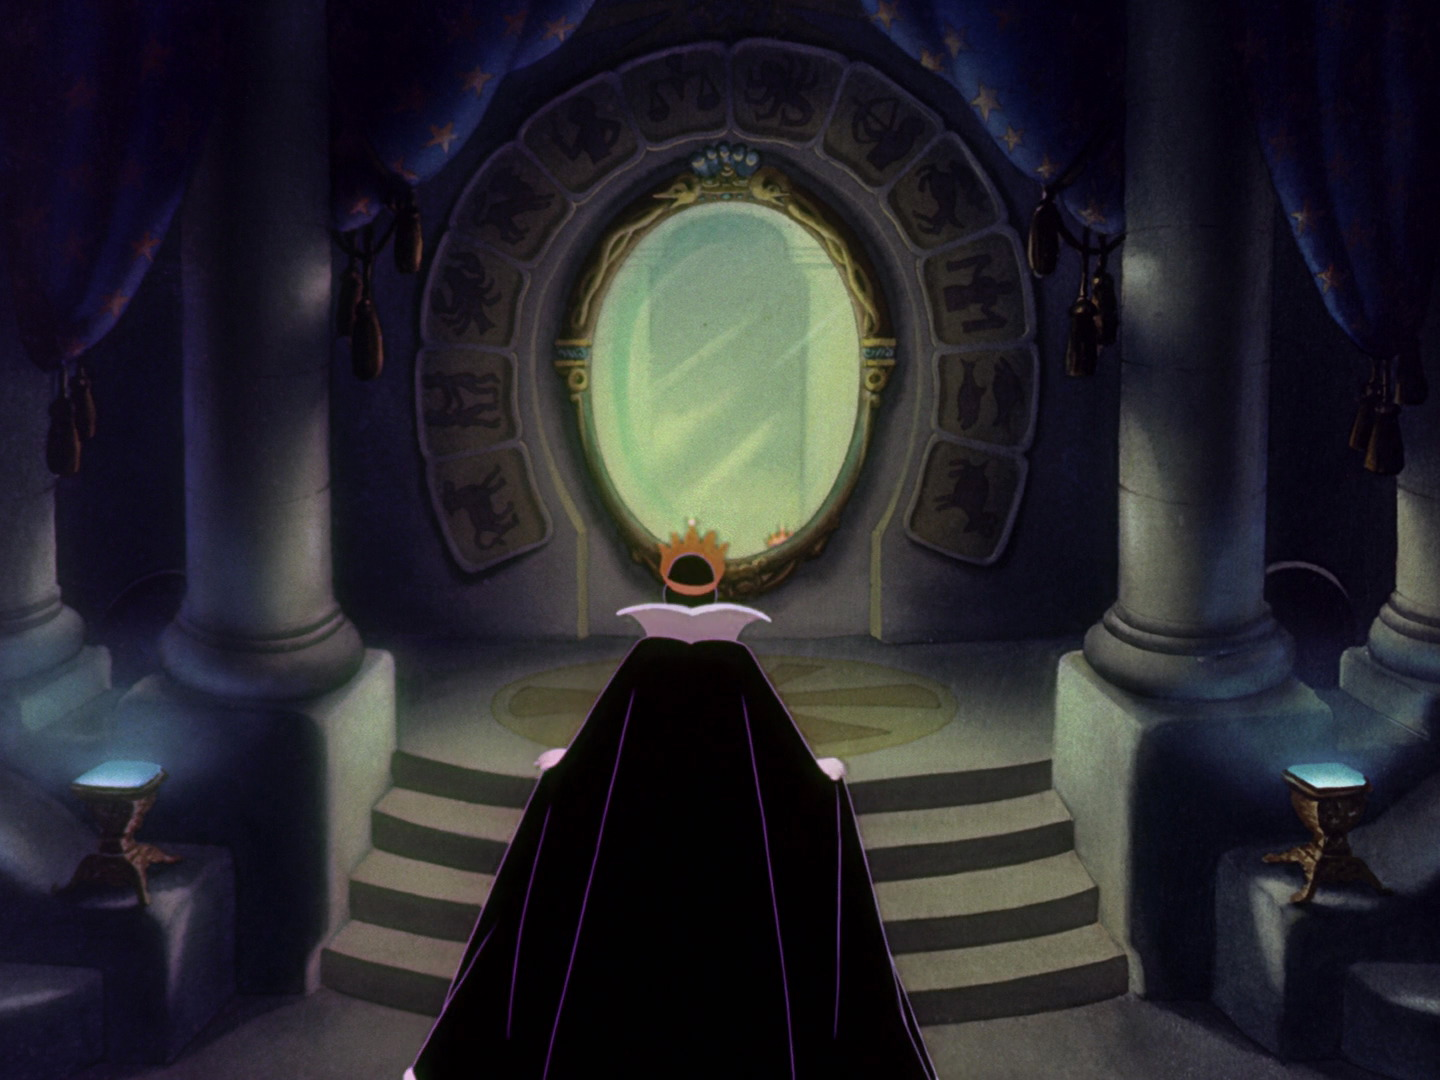 Magic mirror chamber disney wiki fandom powered by wikia for Miroir miroir blanche neige